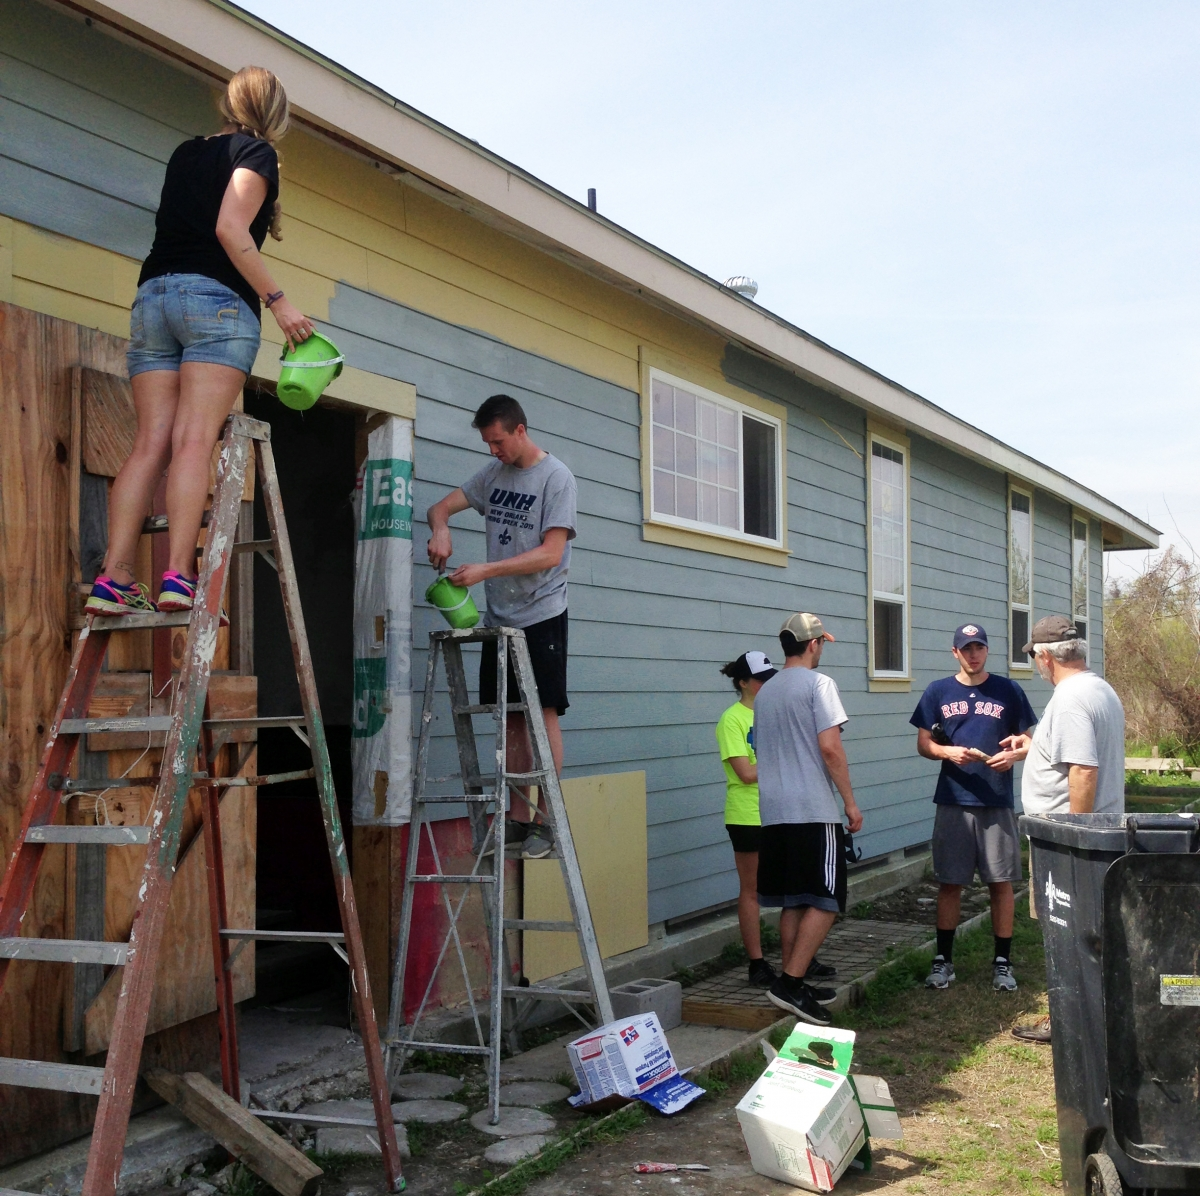 UNH honors class on service trips to N'Orleans